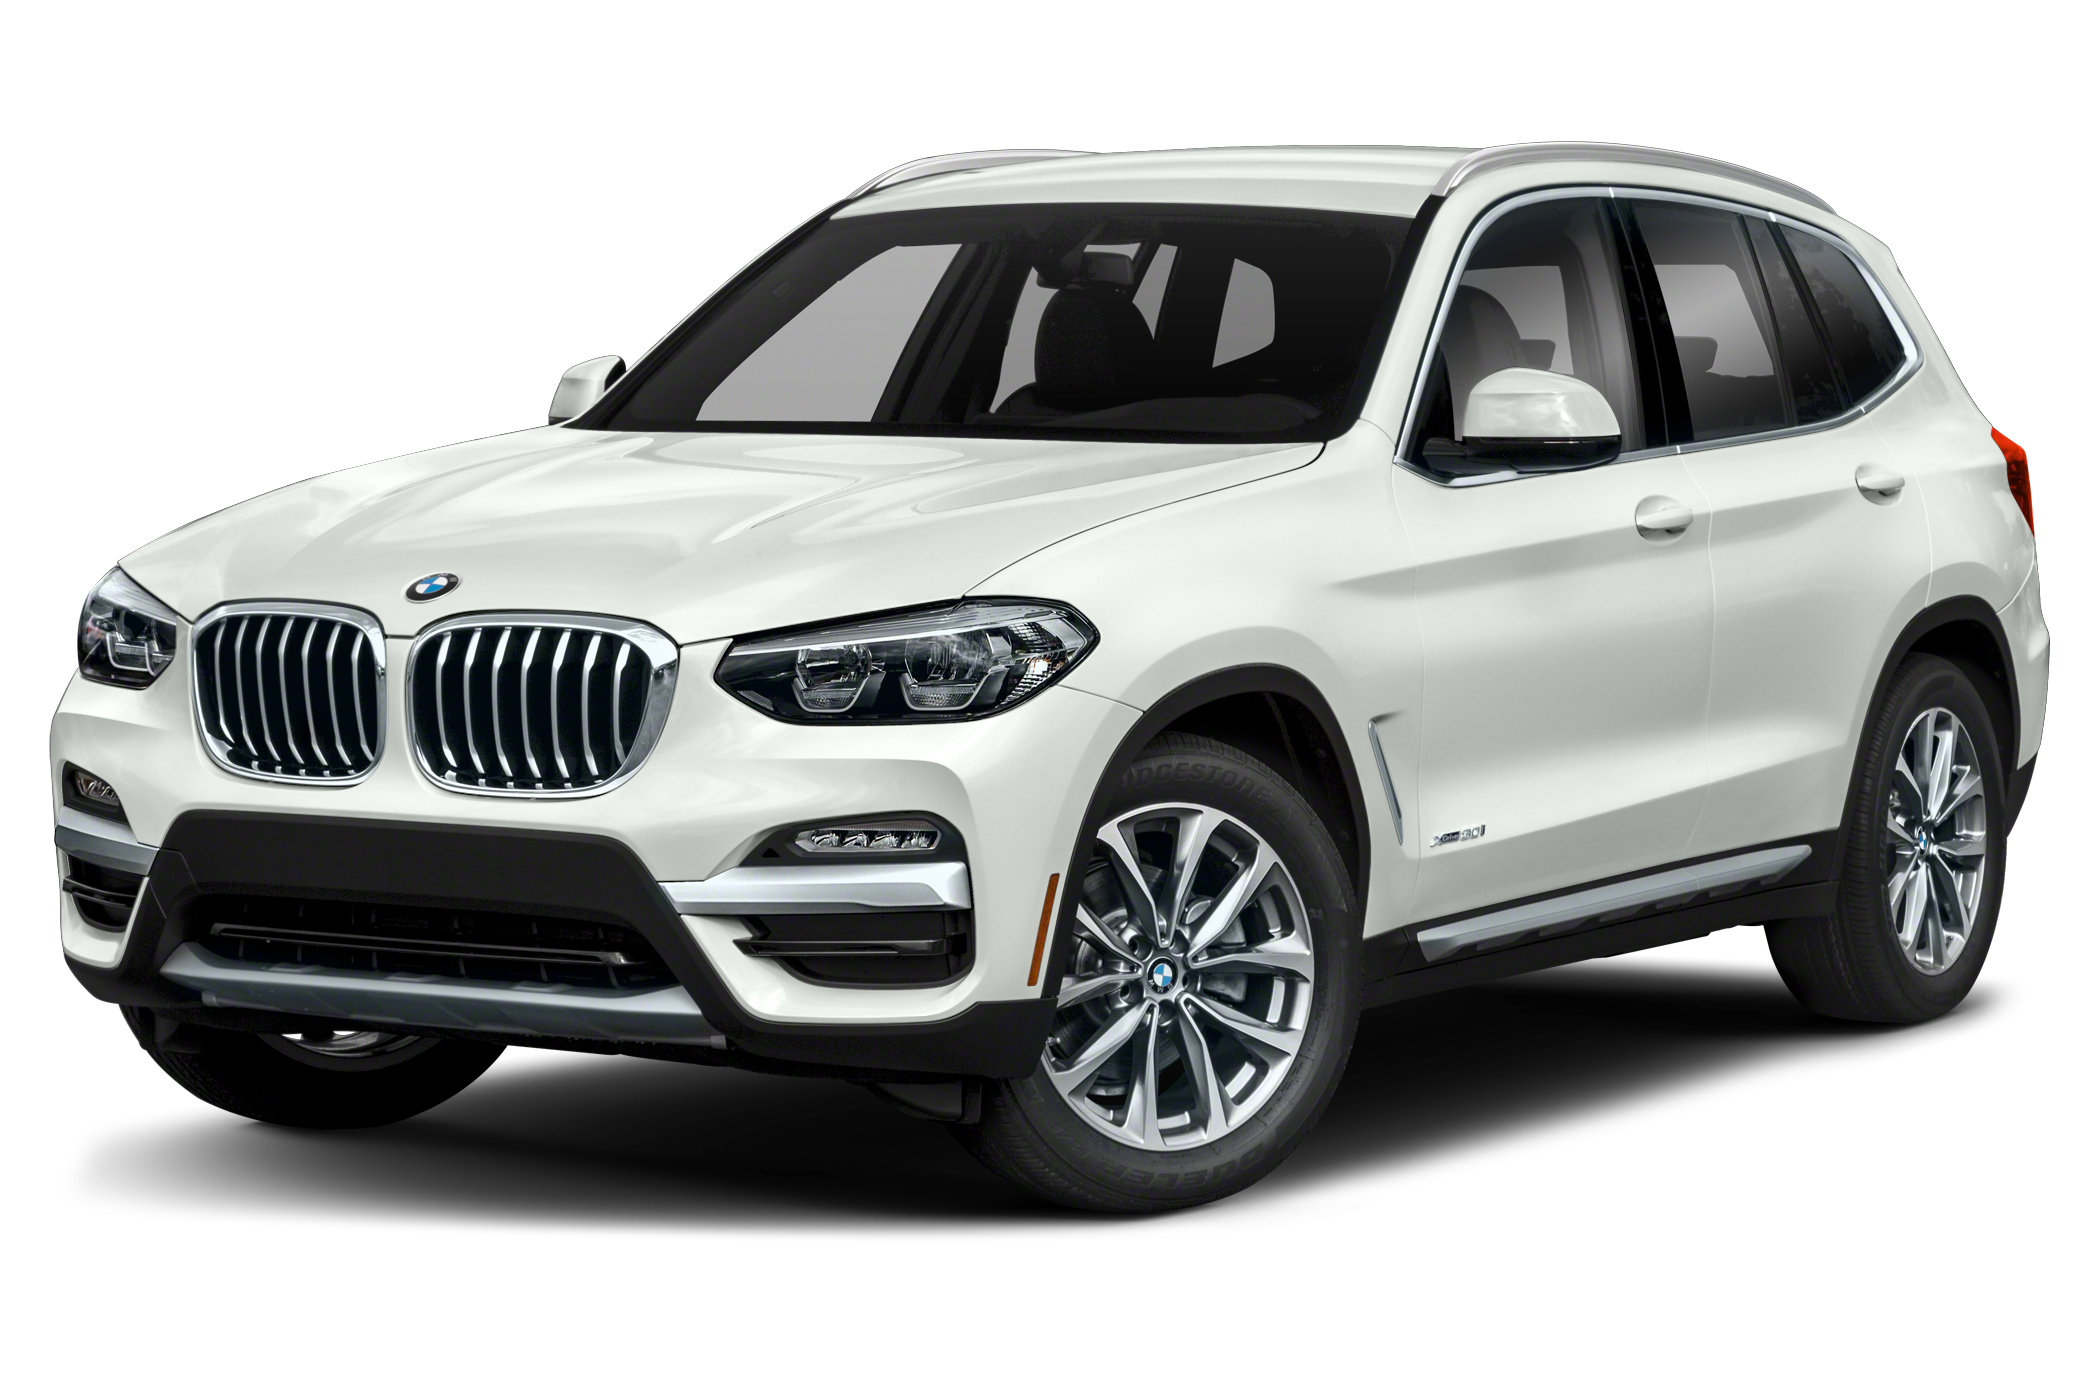 Compare Bmw/X3 to Mercedes-benz/Glc300